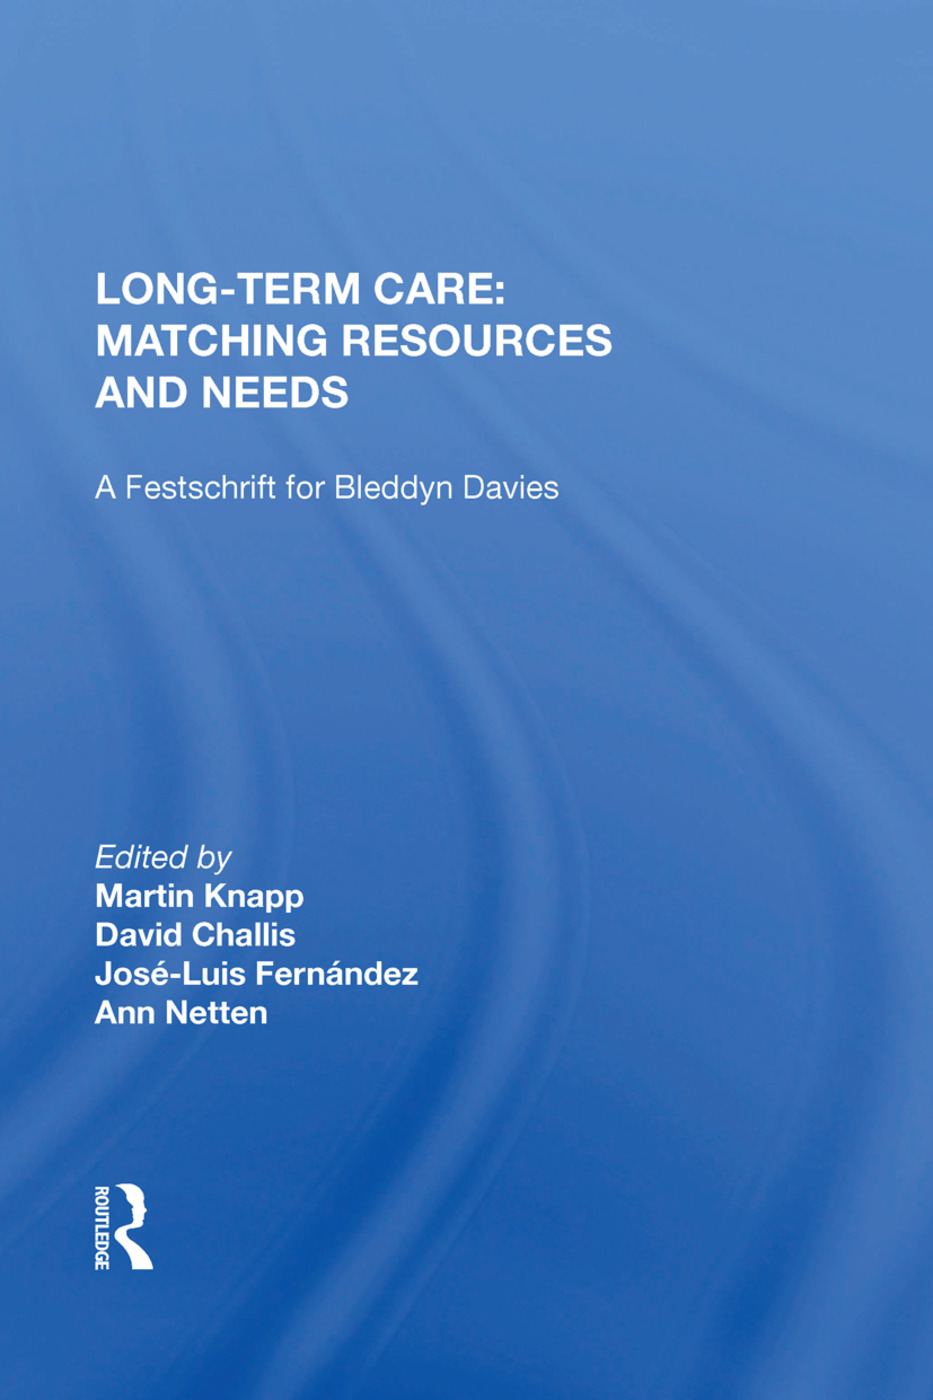 Long-Term Care: Matching Resources and Needs